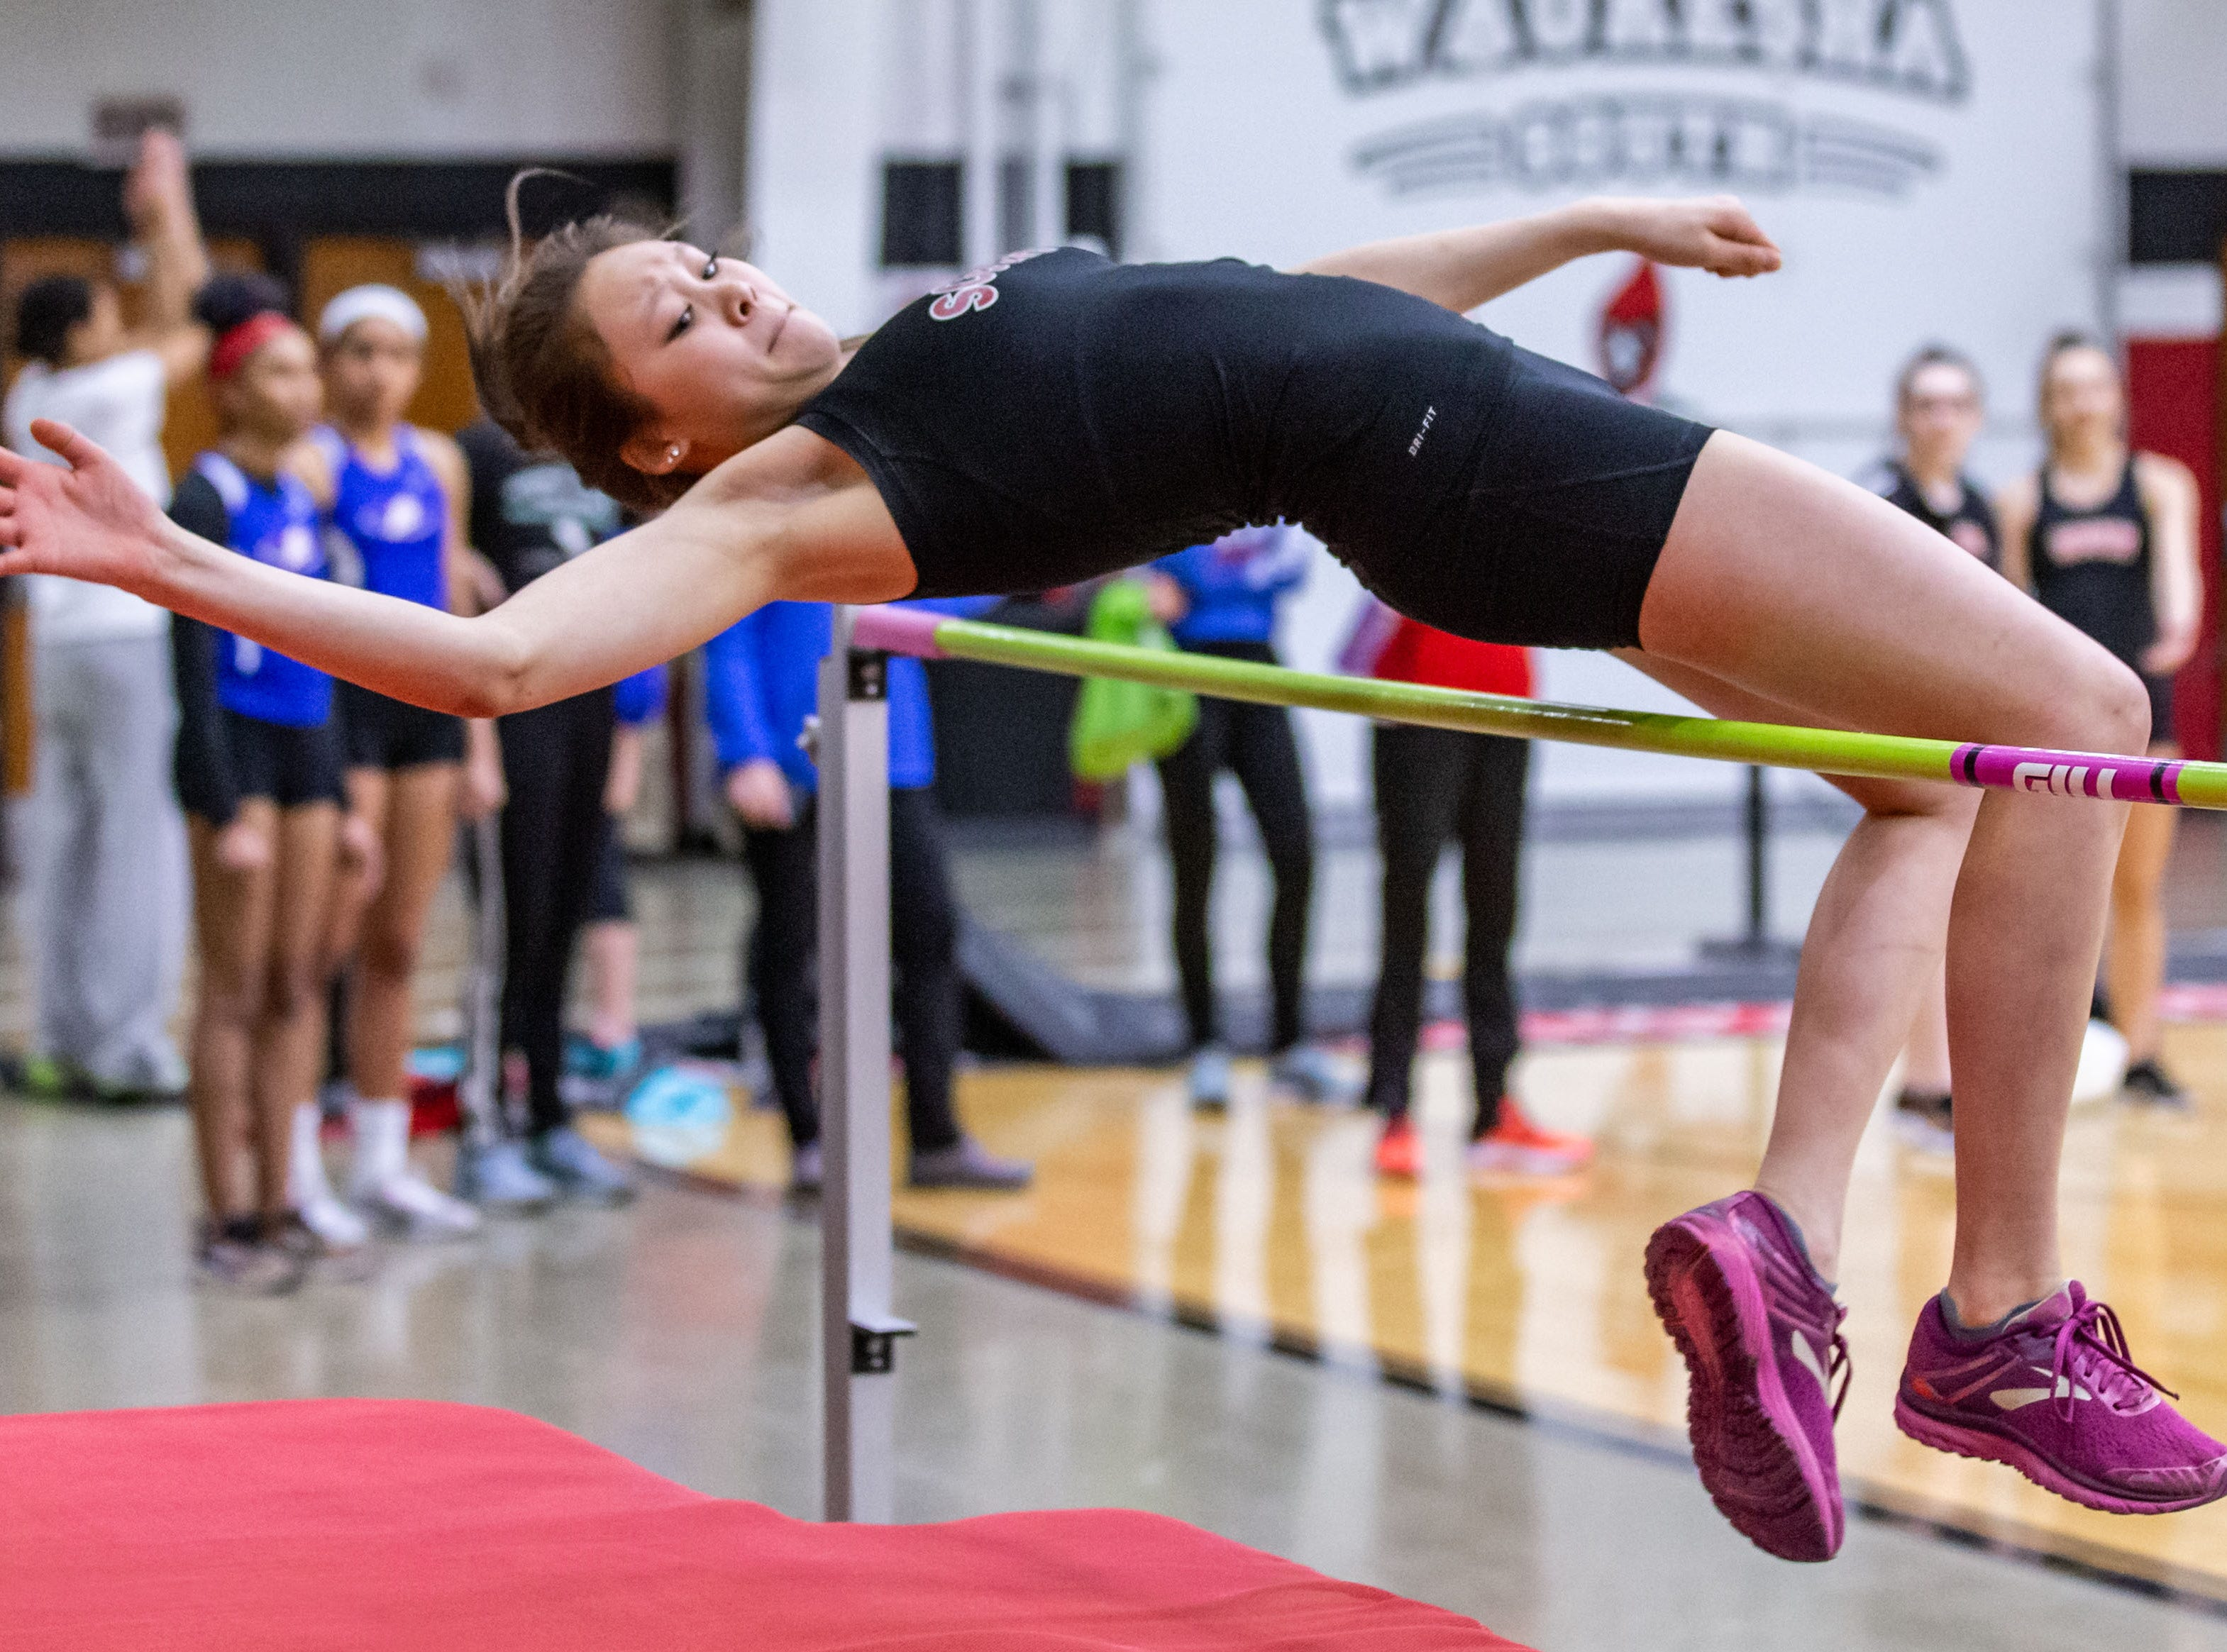 Waukesha South's Kendall Gonzalez competes in the high jump at the Peter Rempe Cardinal Relays hosted by Waukesha South on Thursday, March 21, 2019.